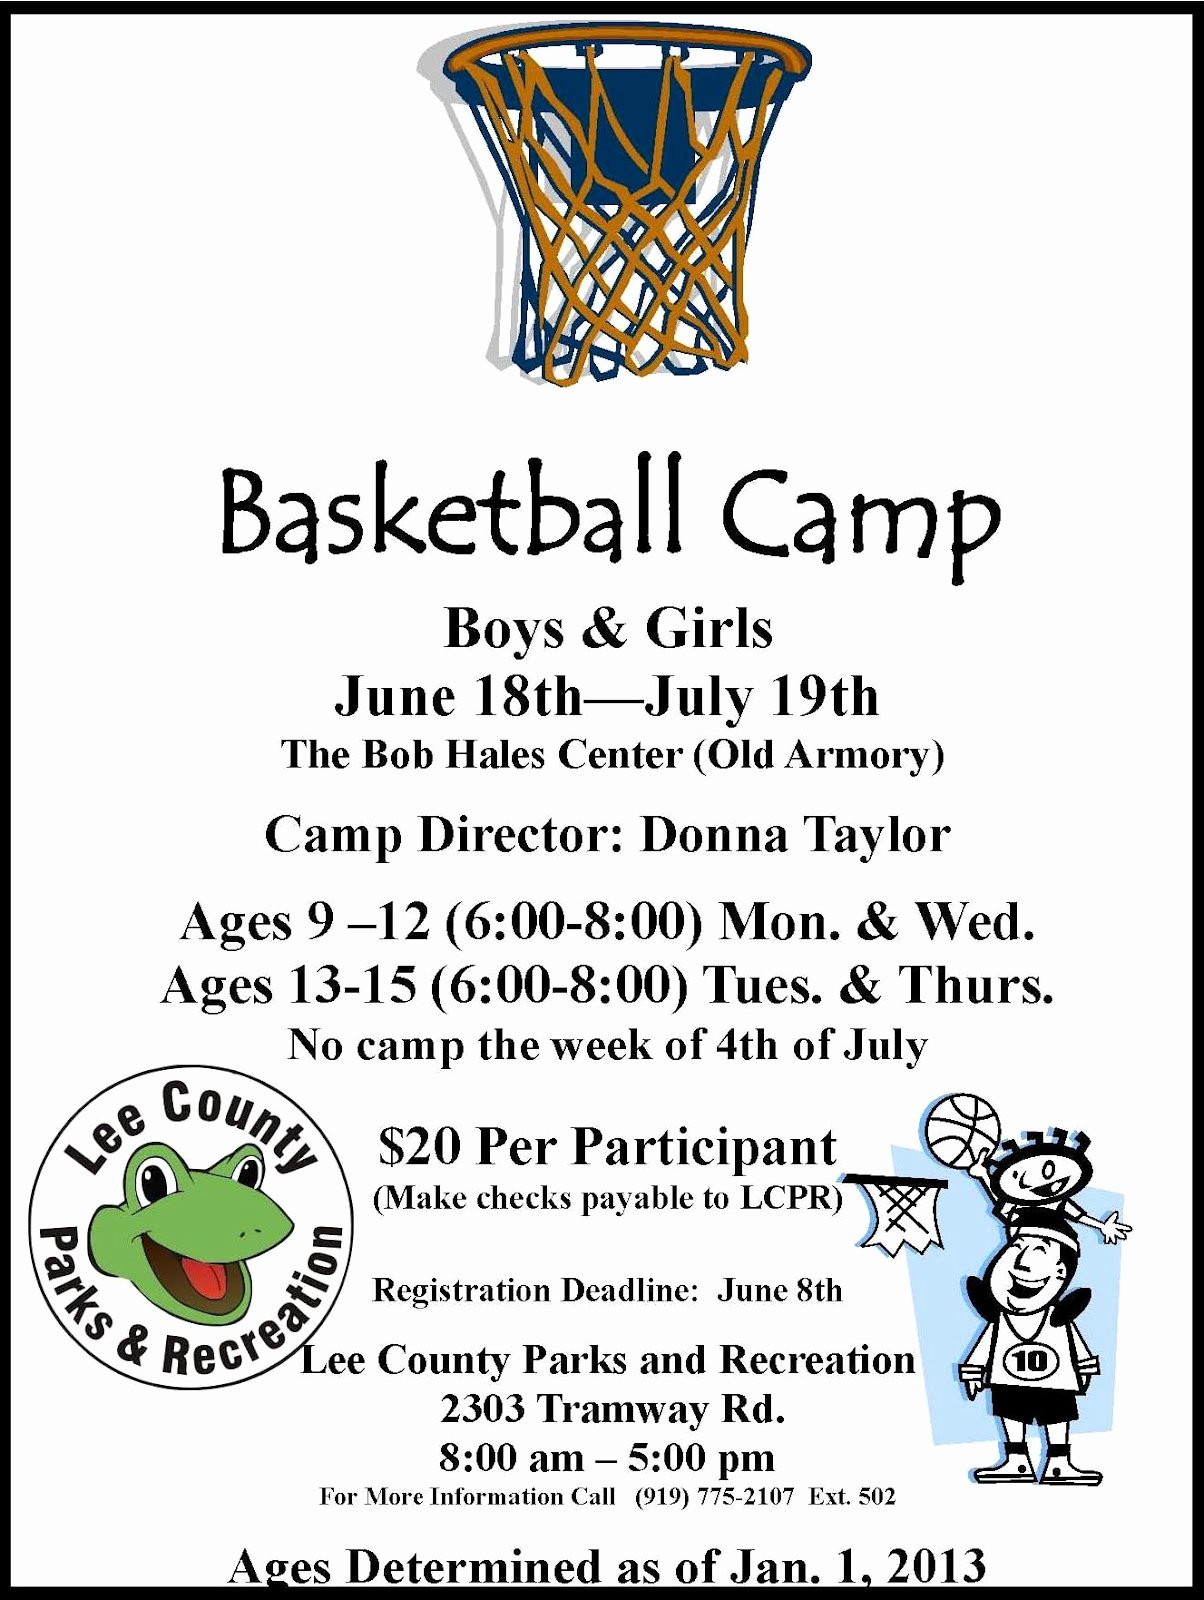 Lee County Government Basketball Camp with Sports